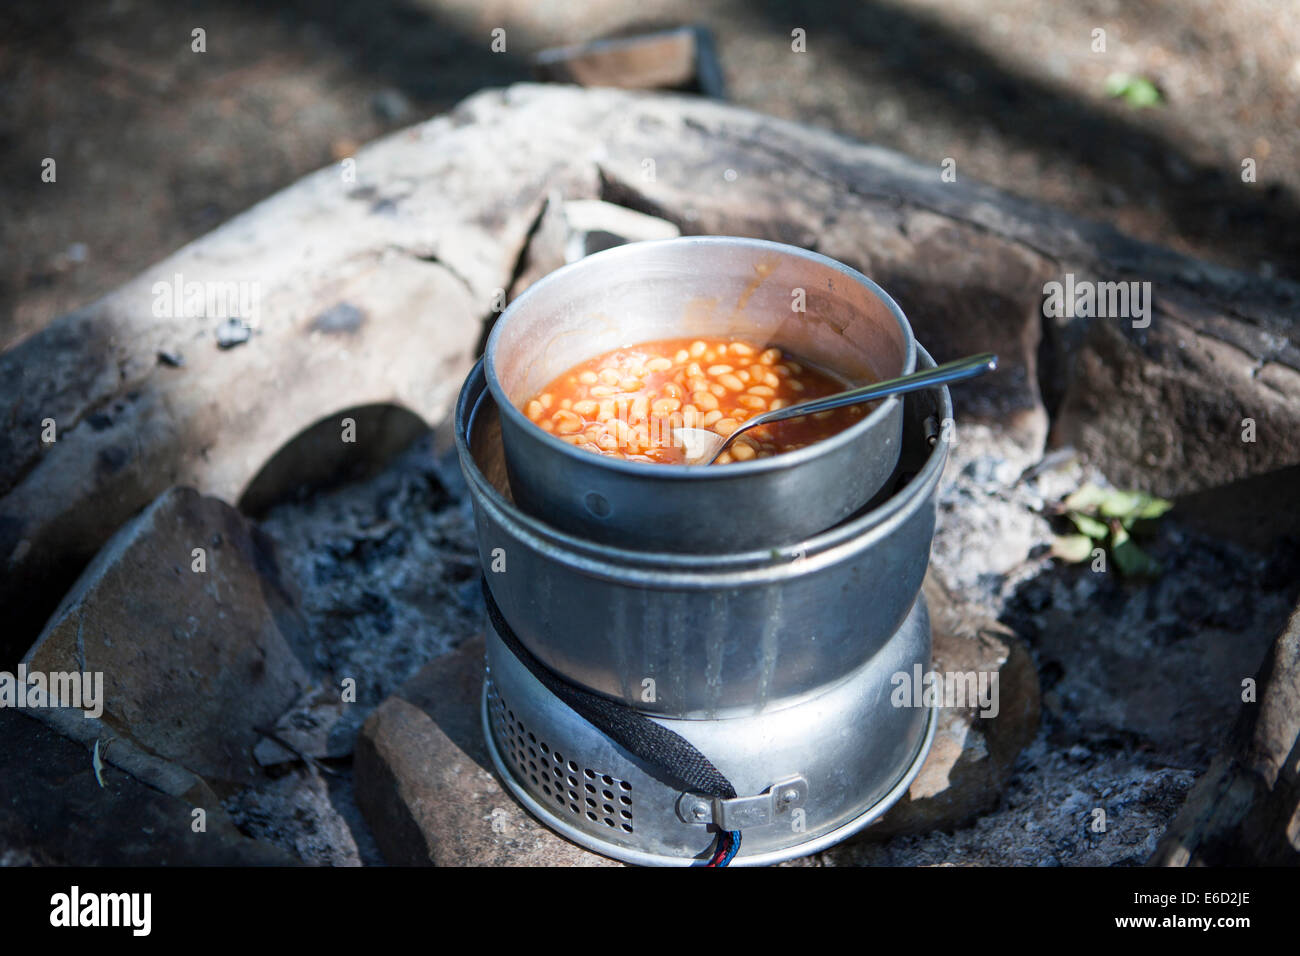 Camping kitchen with baked beans outdoors in nice sunlight. - Stock Image